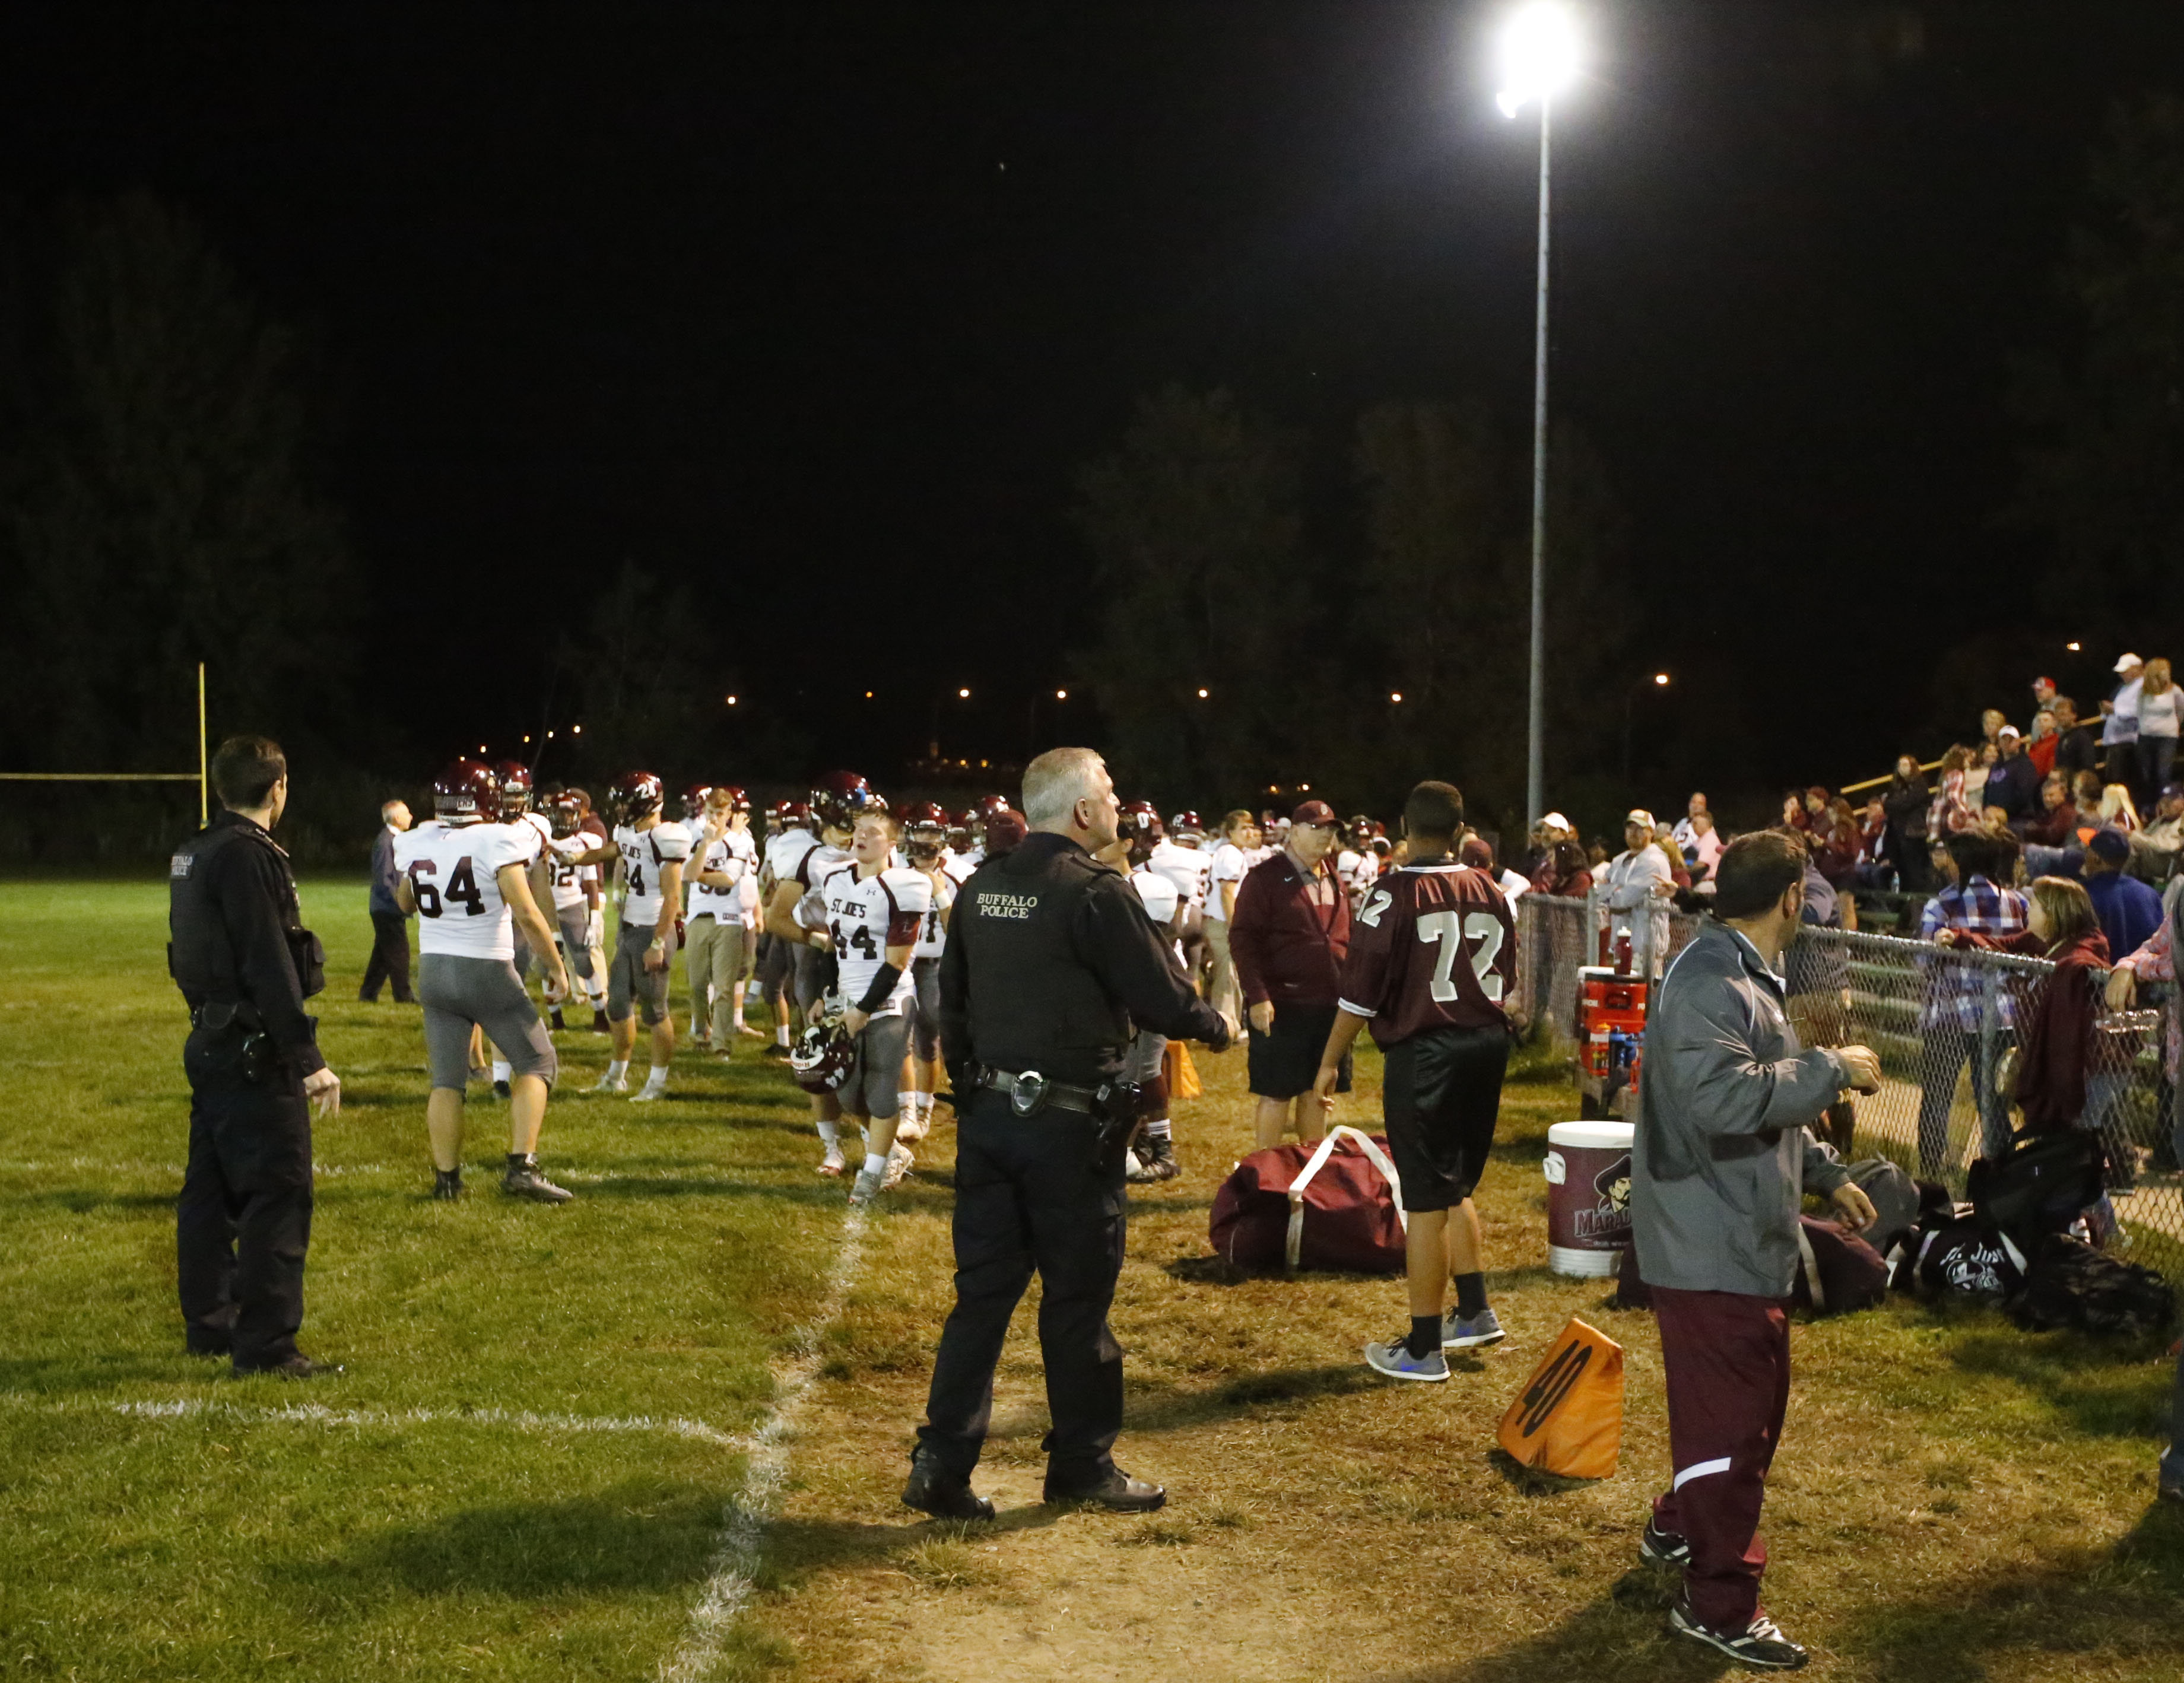 Police clear Fitzpatrick Field after the Oct. 7 brawl between the St. Joe's and Bishop Timon-St. Jude football teams. (Harry Scull Jr./Buffalo News)